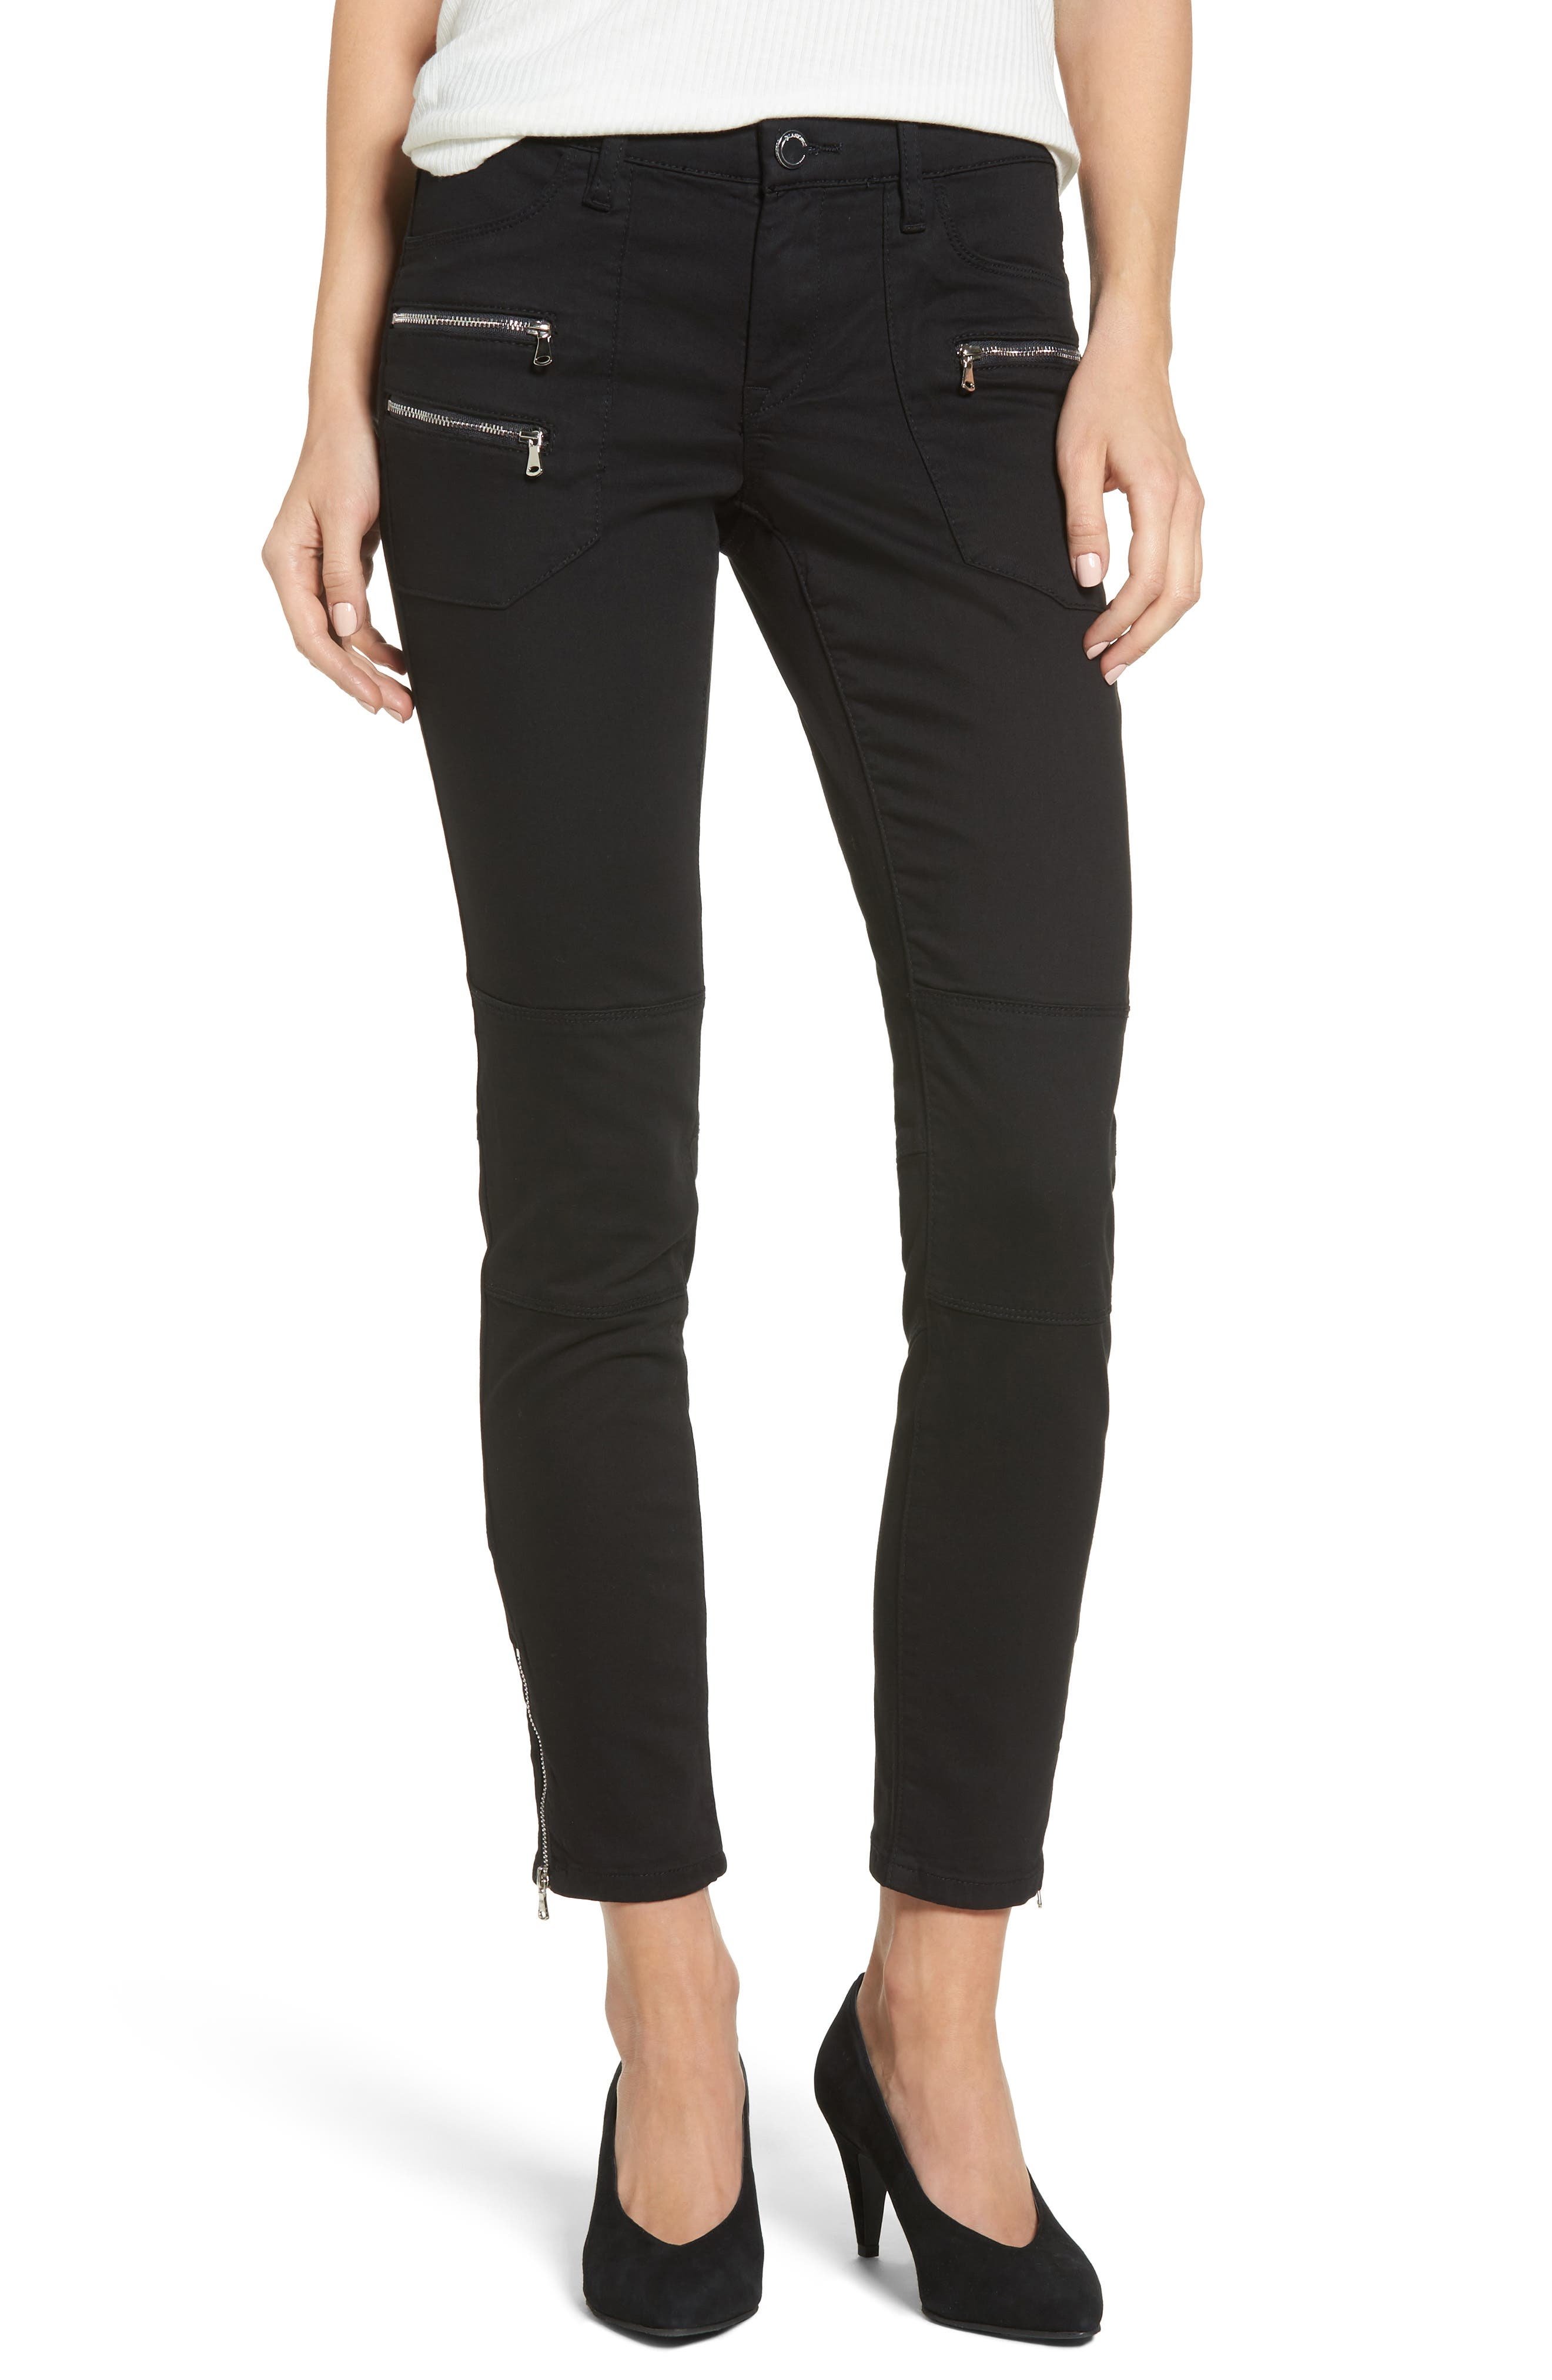 Private Party Skinny Jeans,                         Main,                         color, Black